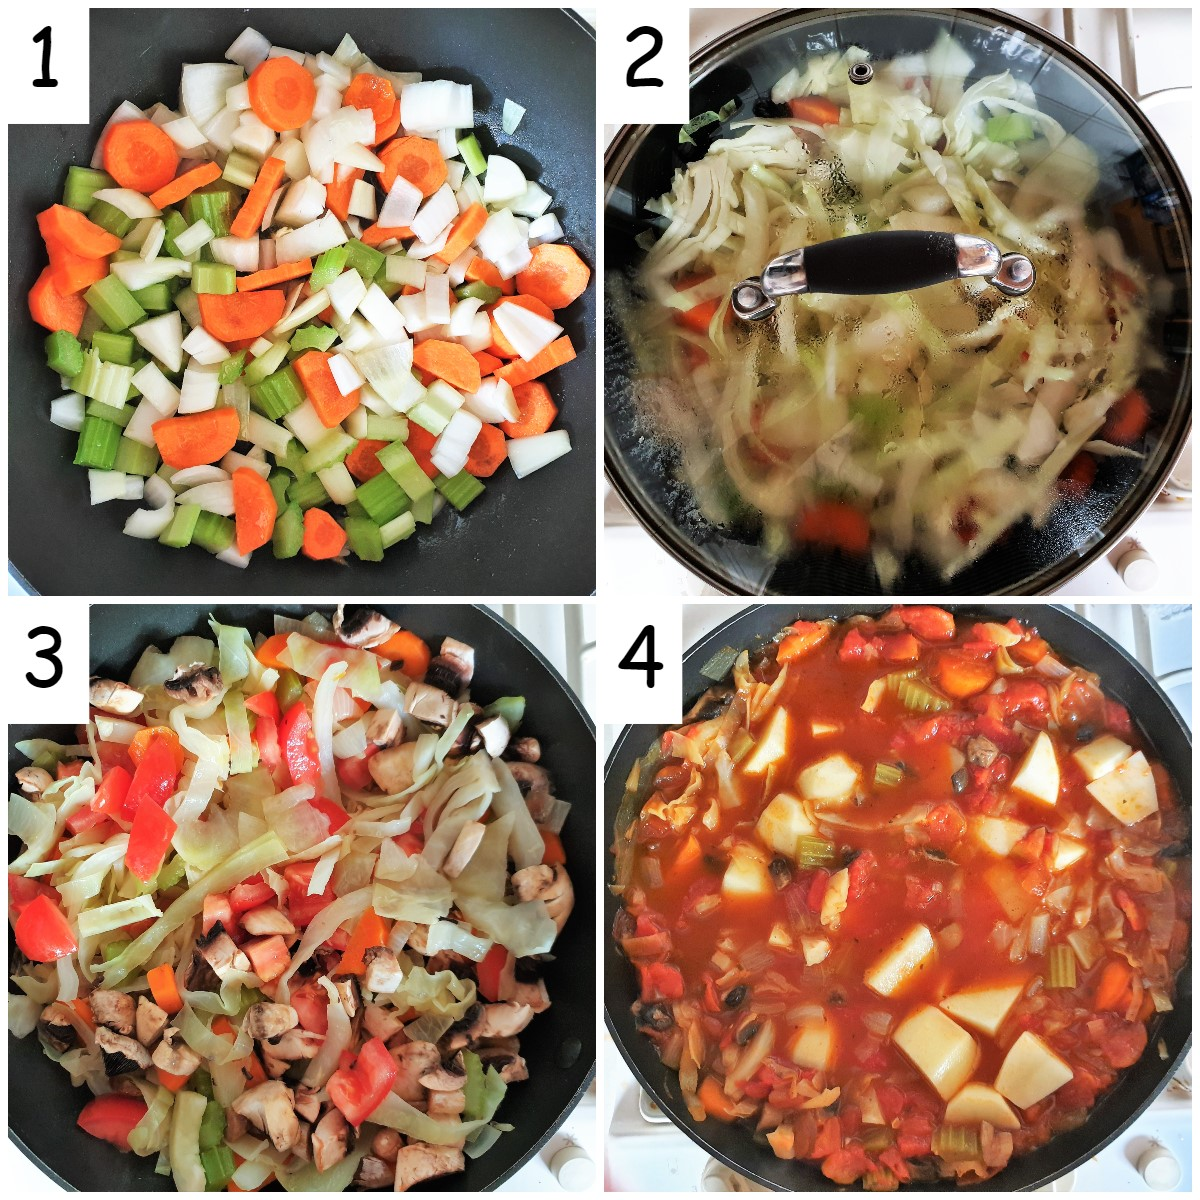 Steps for cooking the vegetables.